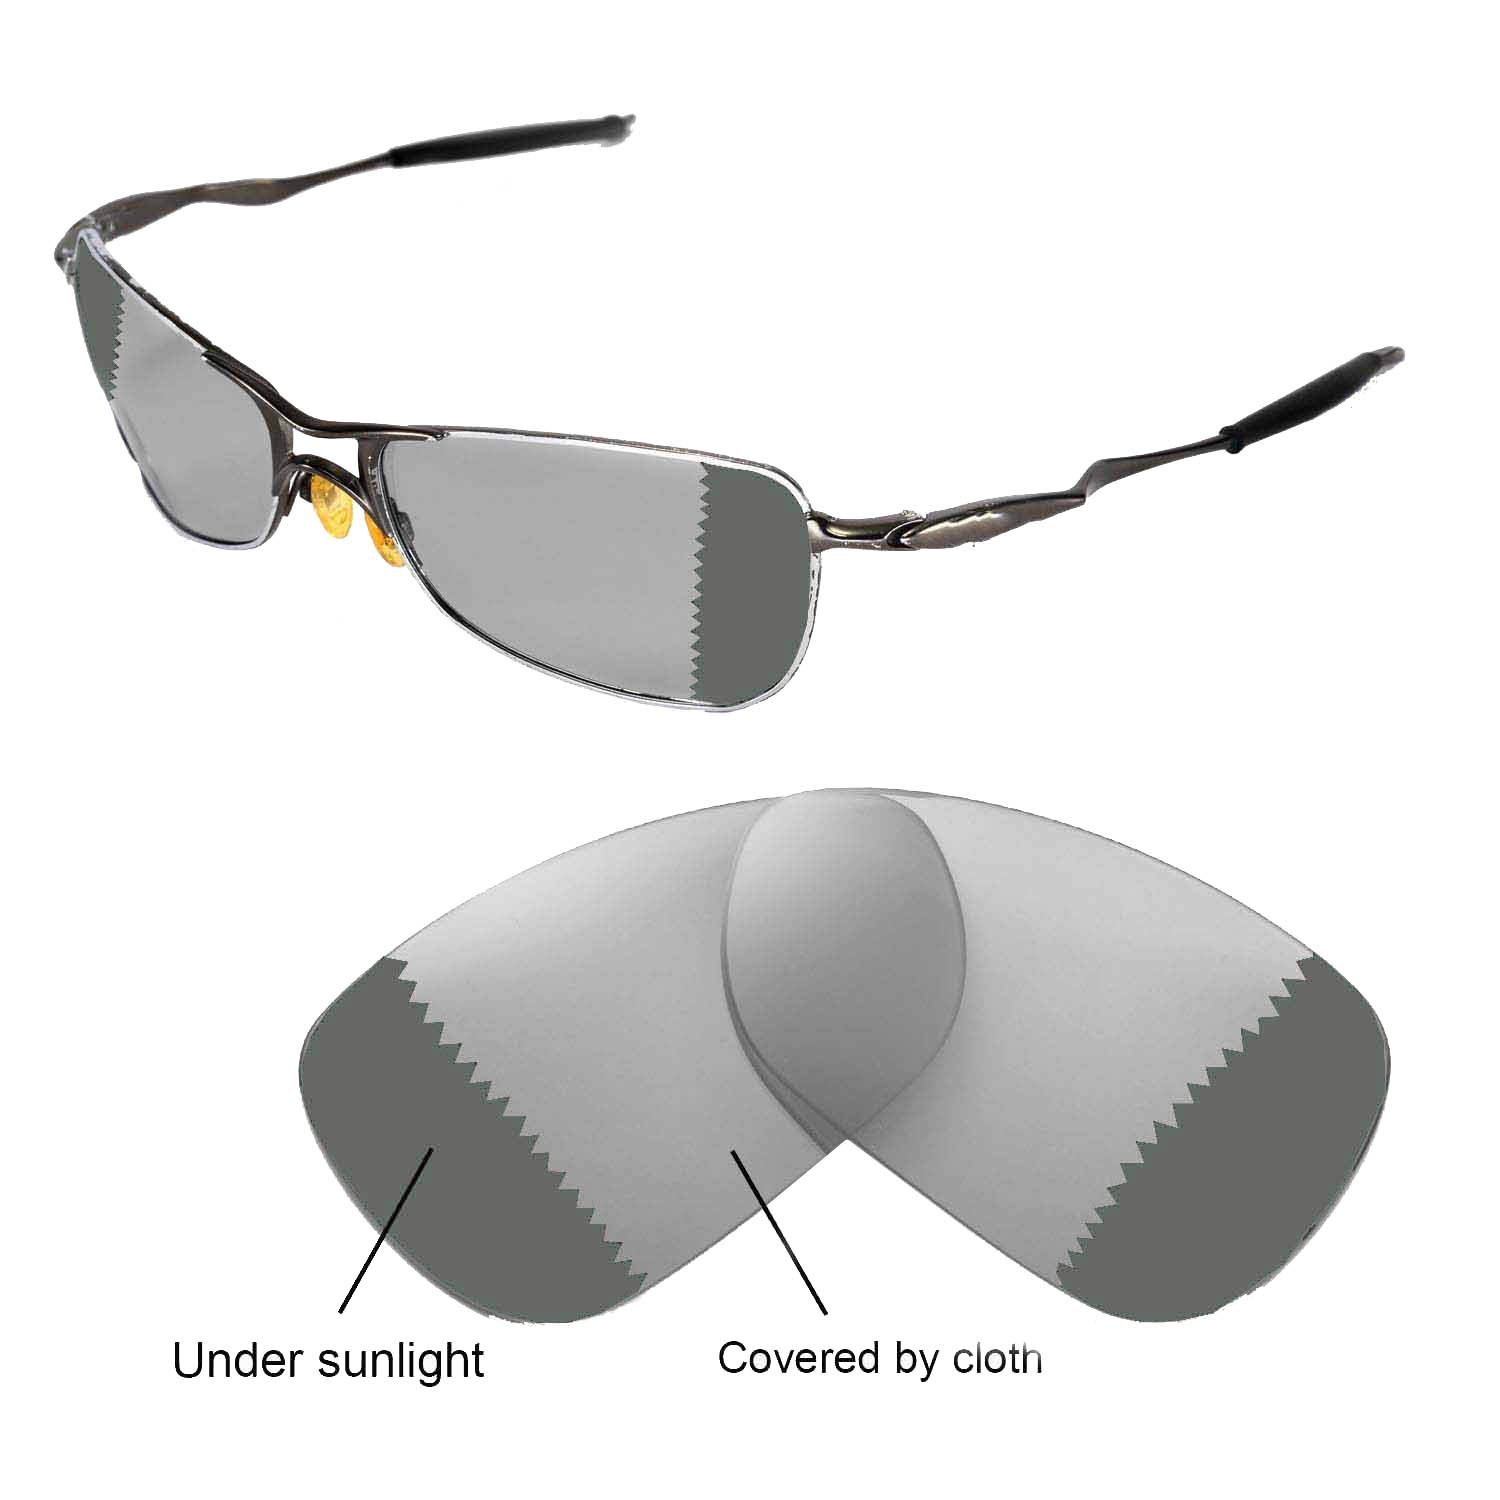 a7eaf6094fb5d Galleon - Walleva Polarized Transition photochromic Replacement Lenses For  Oakley Crosshair 1.0 (2005-2006 Version) Sunglasses